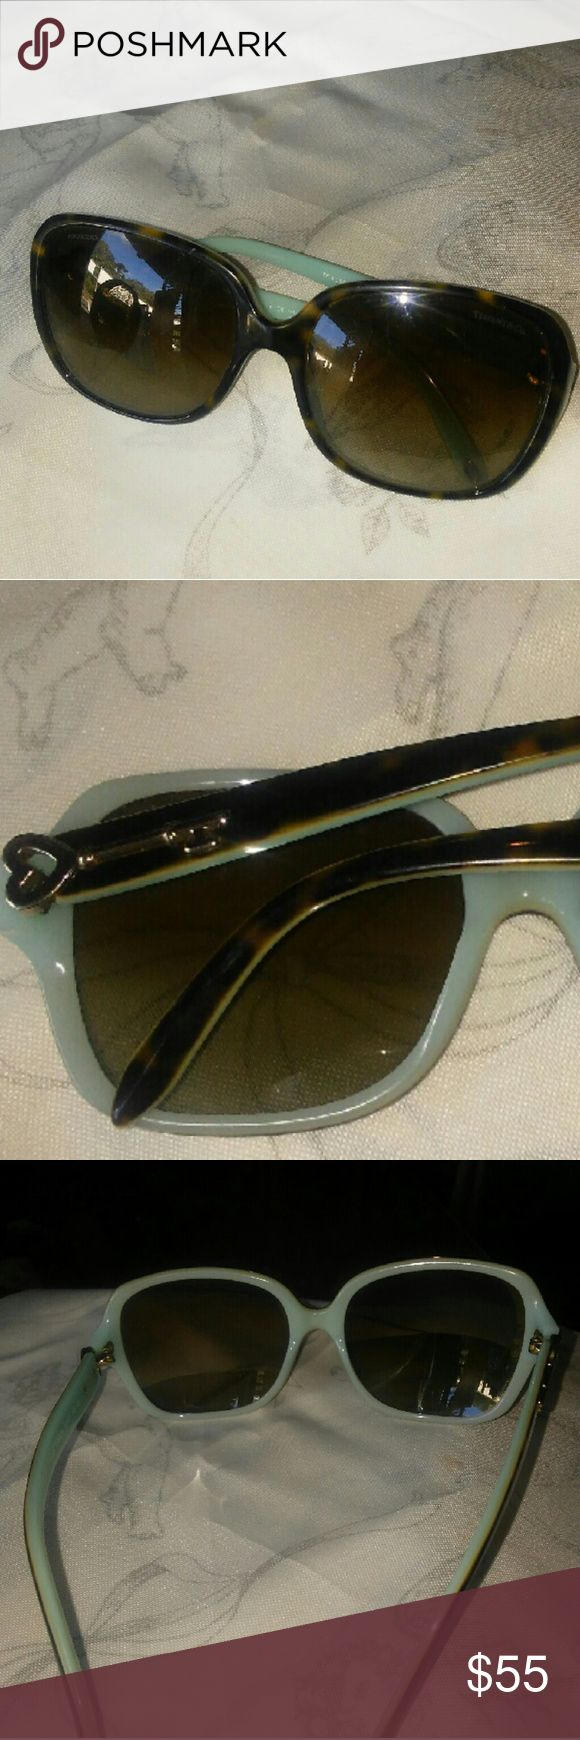 TIFFANY SUNGLASSES Elegant Tiffany Ochelari de Soare women's sunglasses.  Sunglasses are brown, black and blue number TF 4056 8134/T5.  Lenses from top to bottom are 2 inches long and 2 1/2 inches wide.  Temples are 3 1/2 long.  Temples tips are 1 1/2 inch long.  Please note, there are a few signs of usage. Tiffany & Co. Other